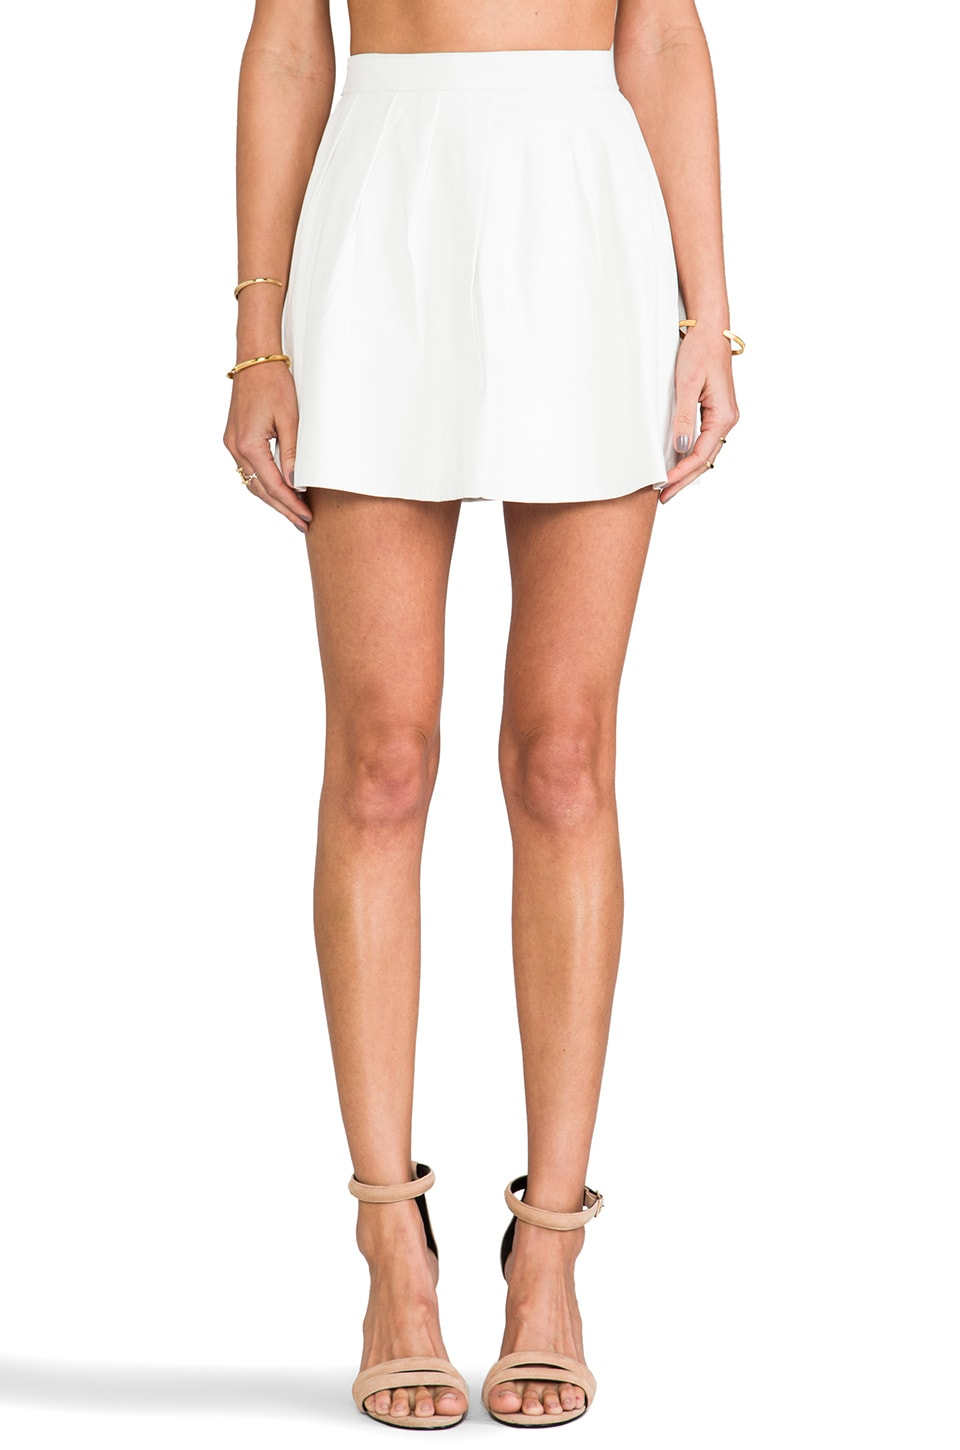 This is a Love Song Strike Plain Leather Mini Skirt in White